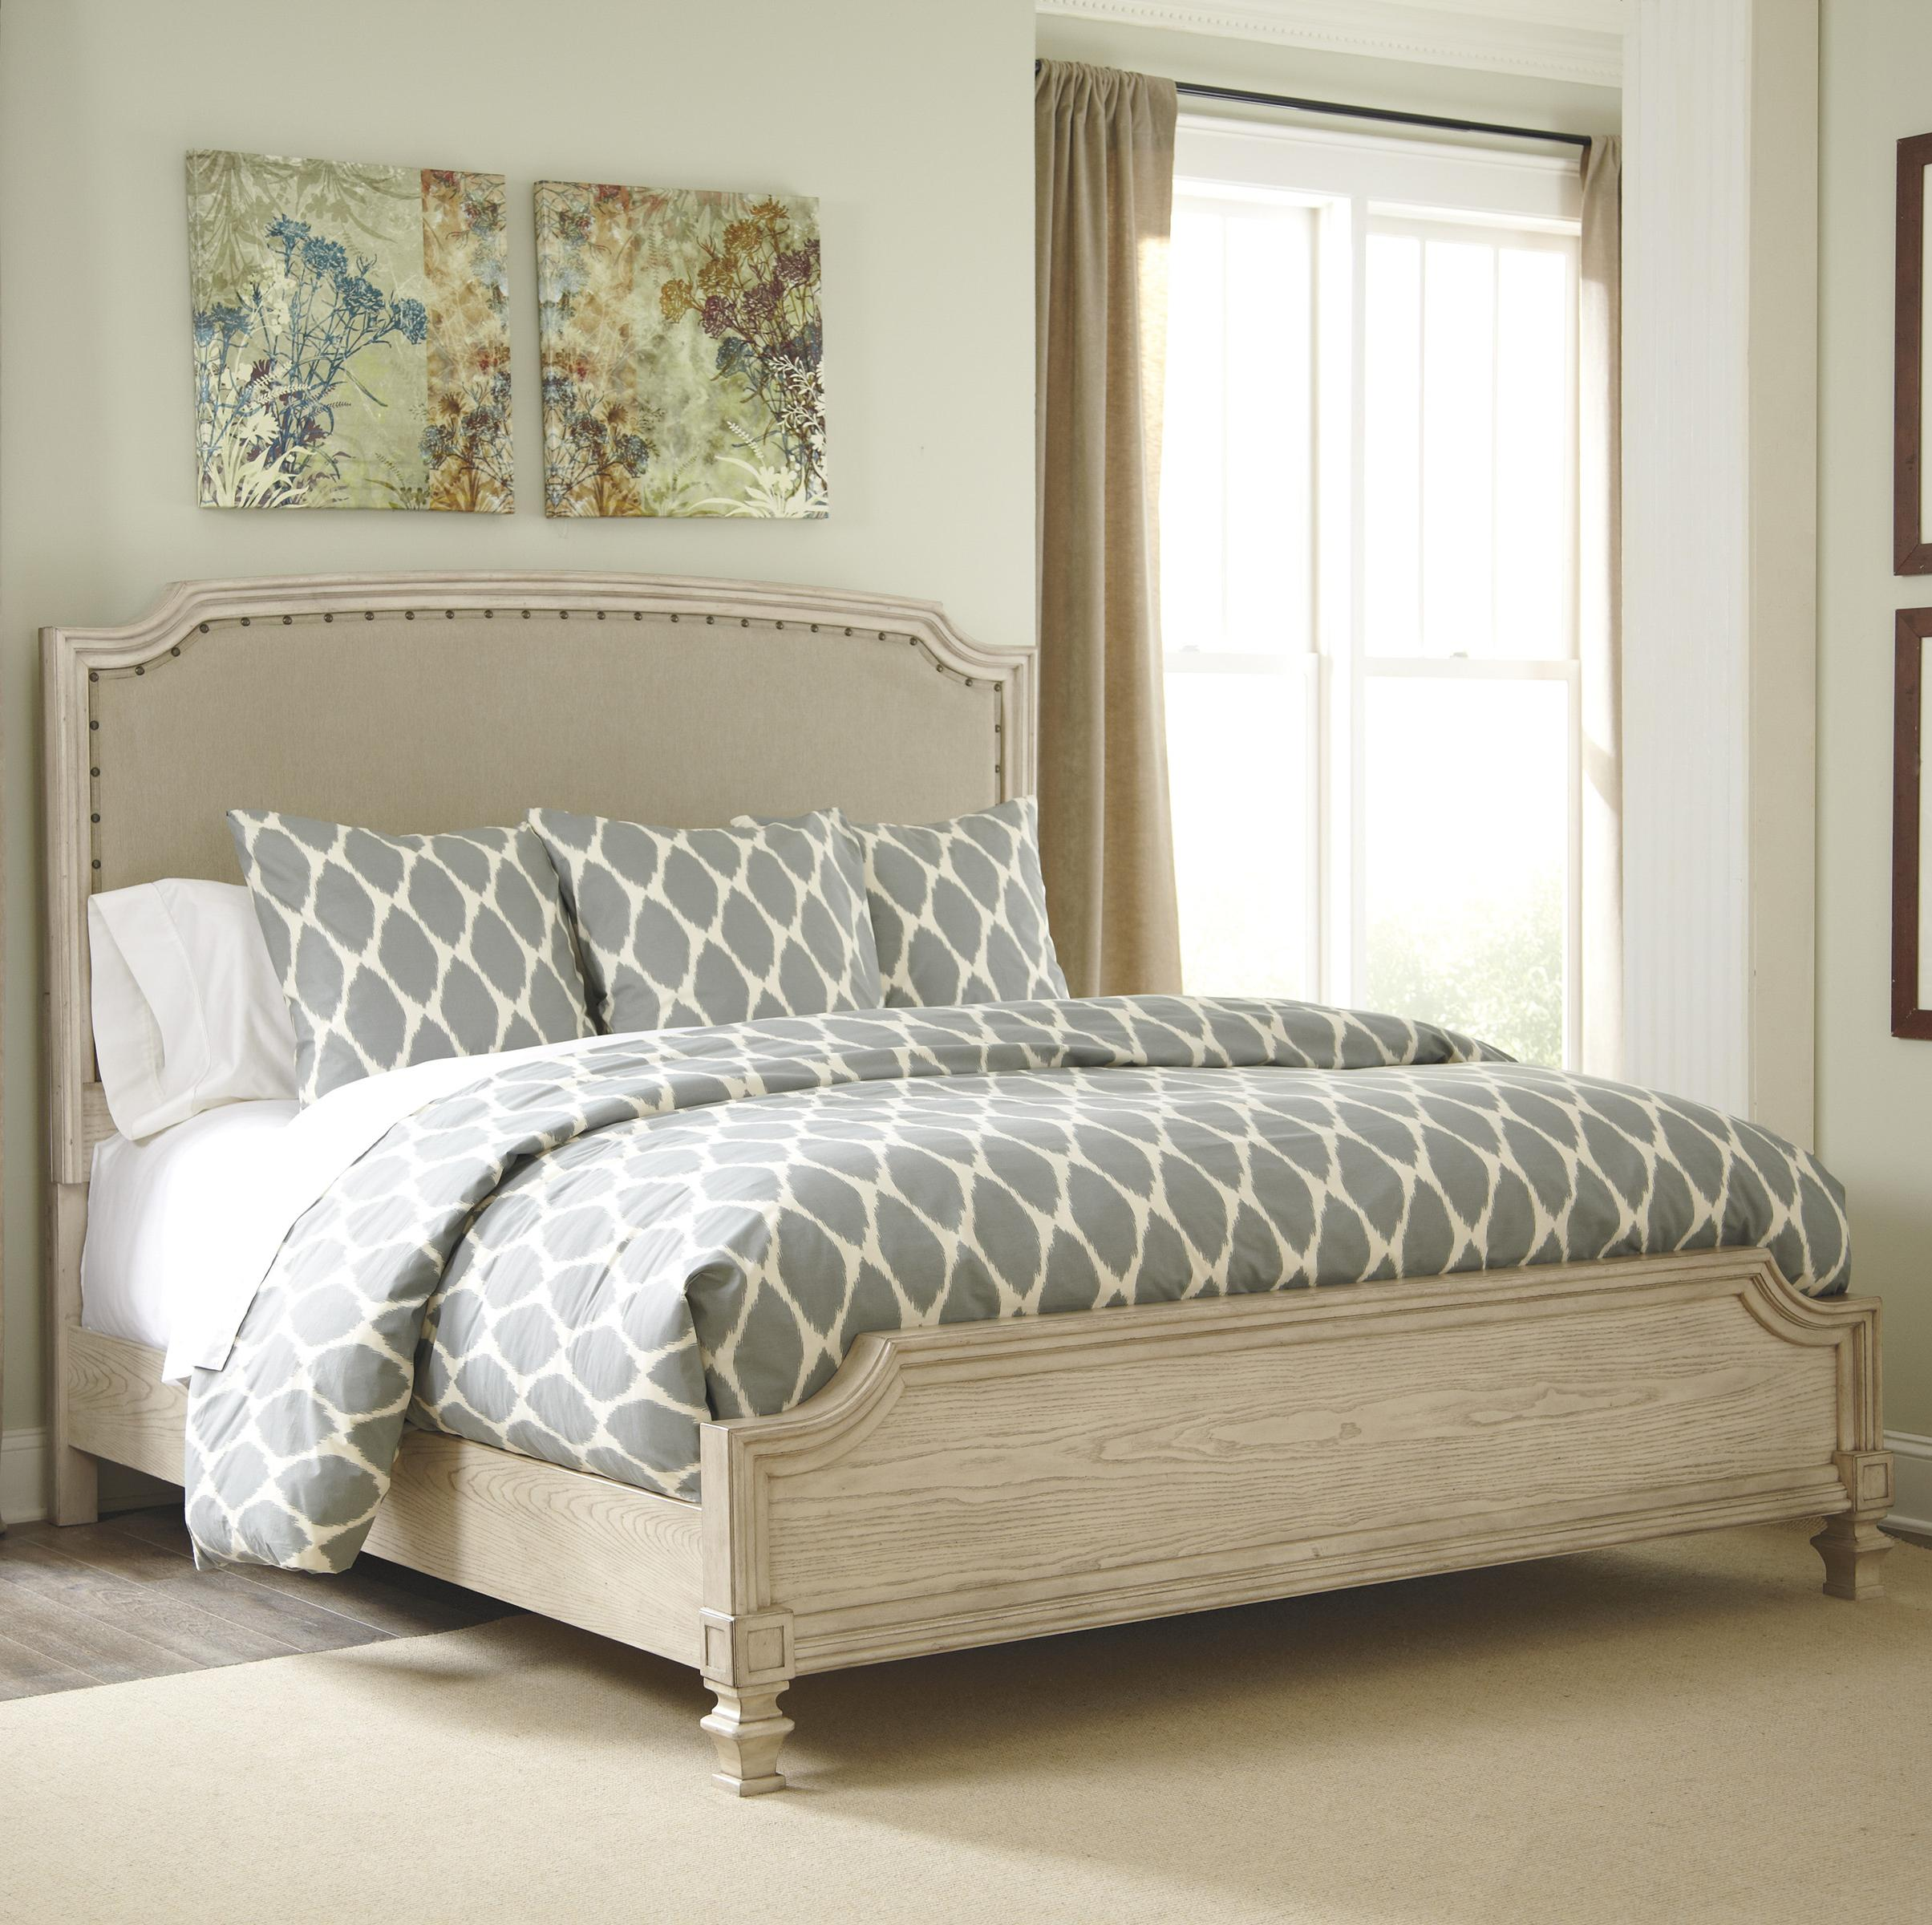 Signature Design By Ashley Demarlos King Upholstered Panel